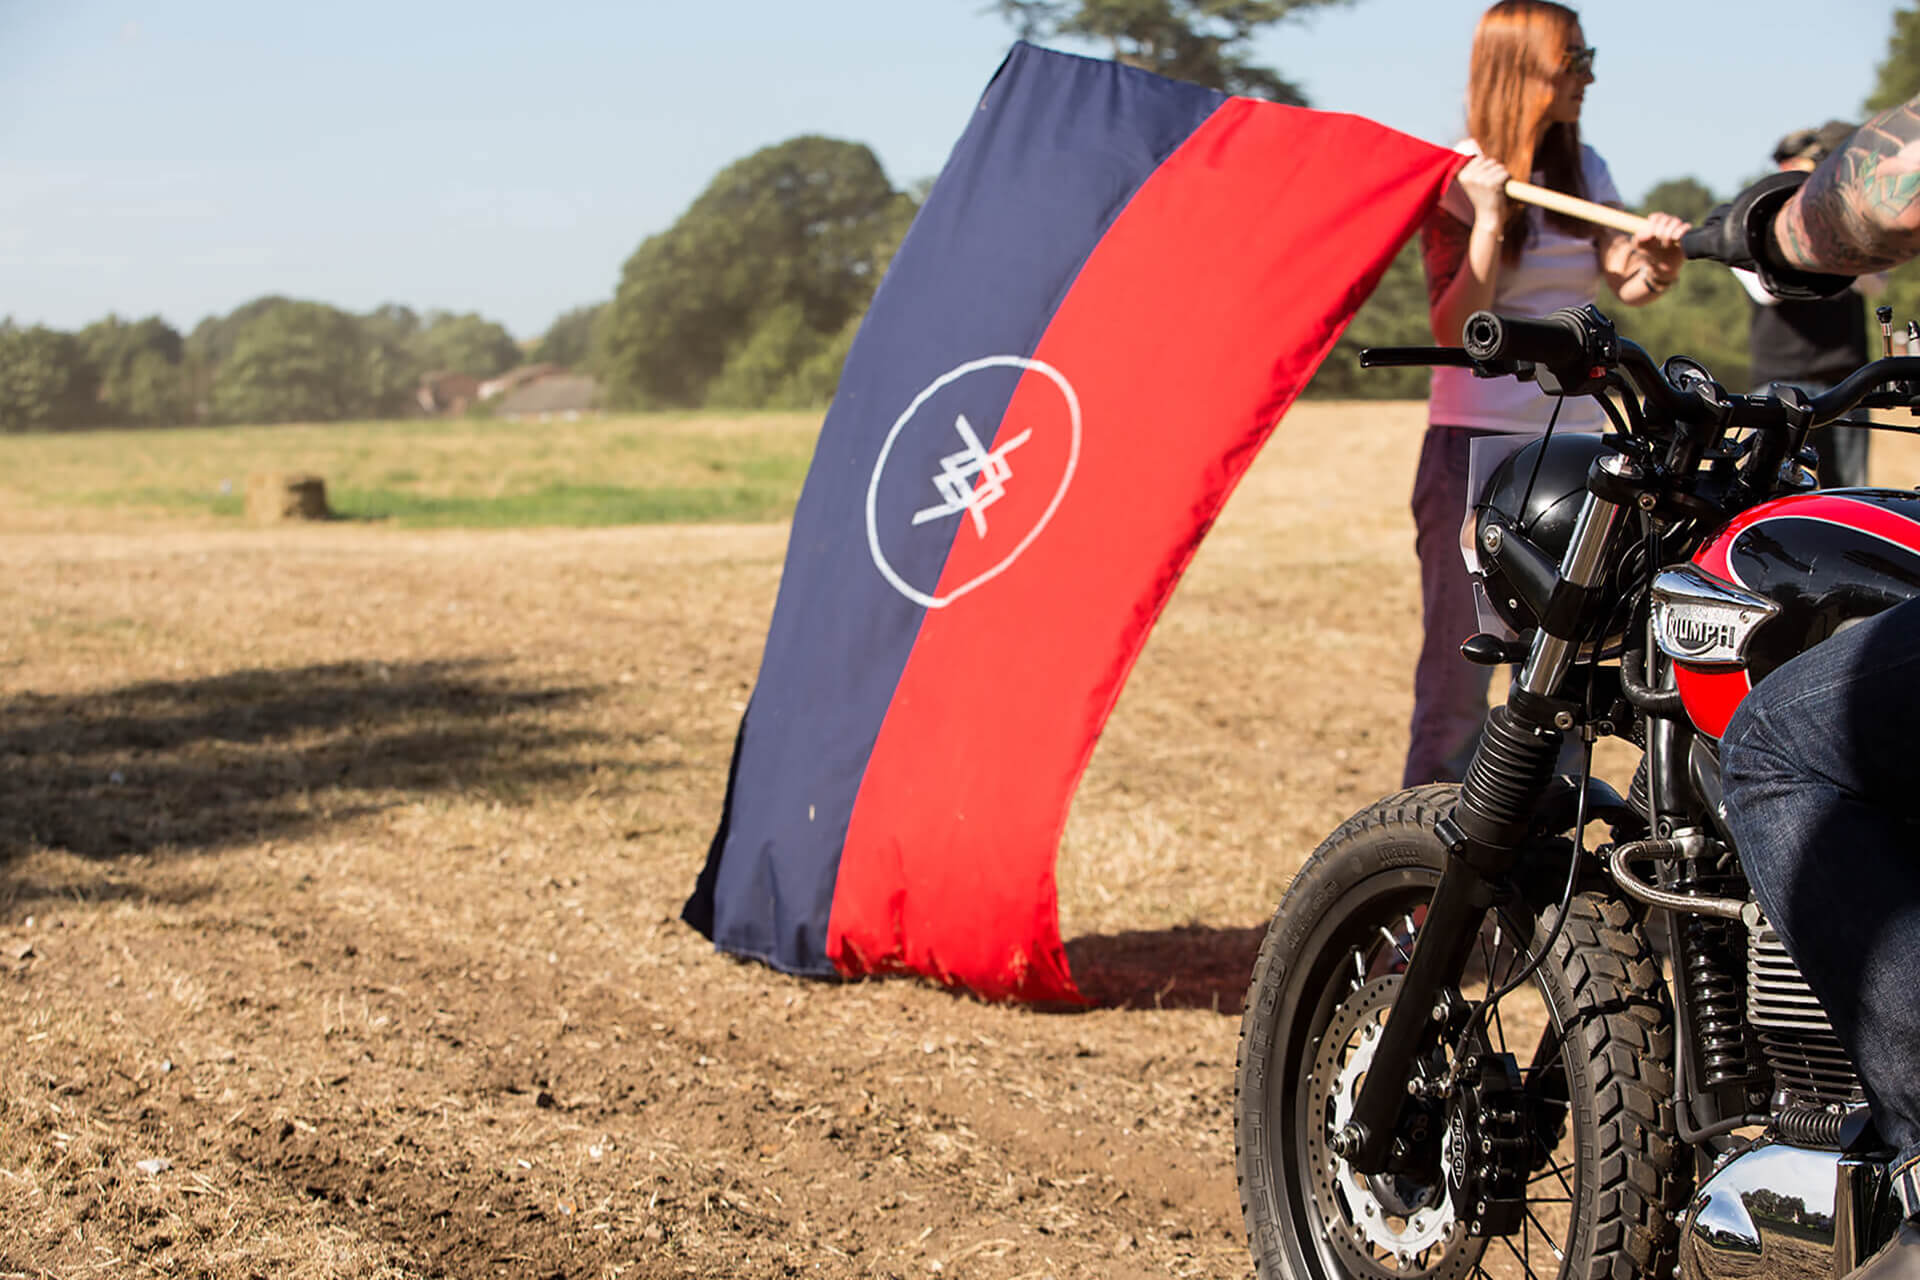 Malle Mile, Event, Motorcycle, Richard, Summer, WeAreShuffle, Agency, Photography, Film, Production, Malle London, Triumph